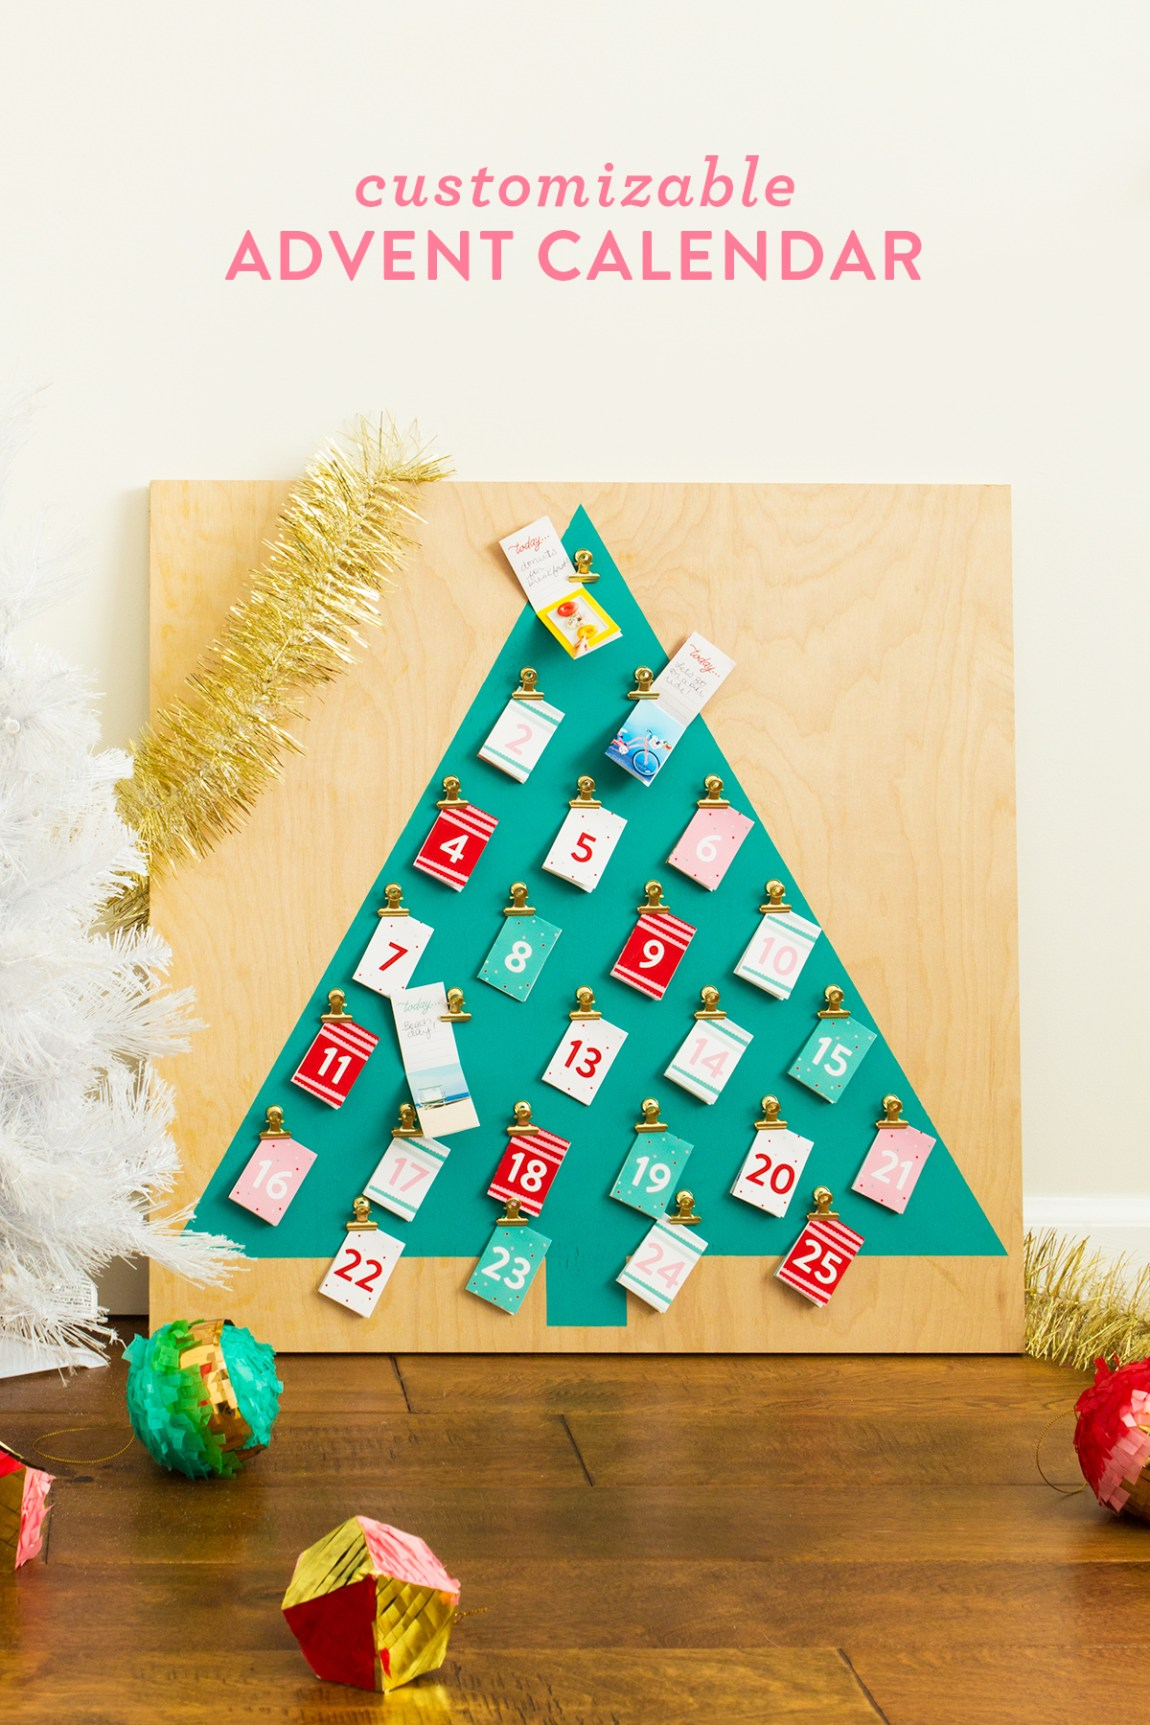 Get ready for Christmas and print out this adorable advent calendar! Add your own photos inside each card with @AdobeElements. #ElementsCreators #sponsored